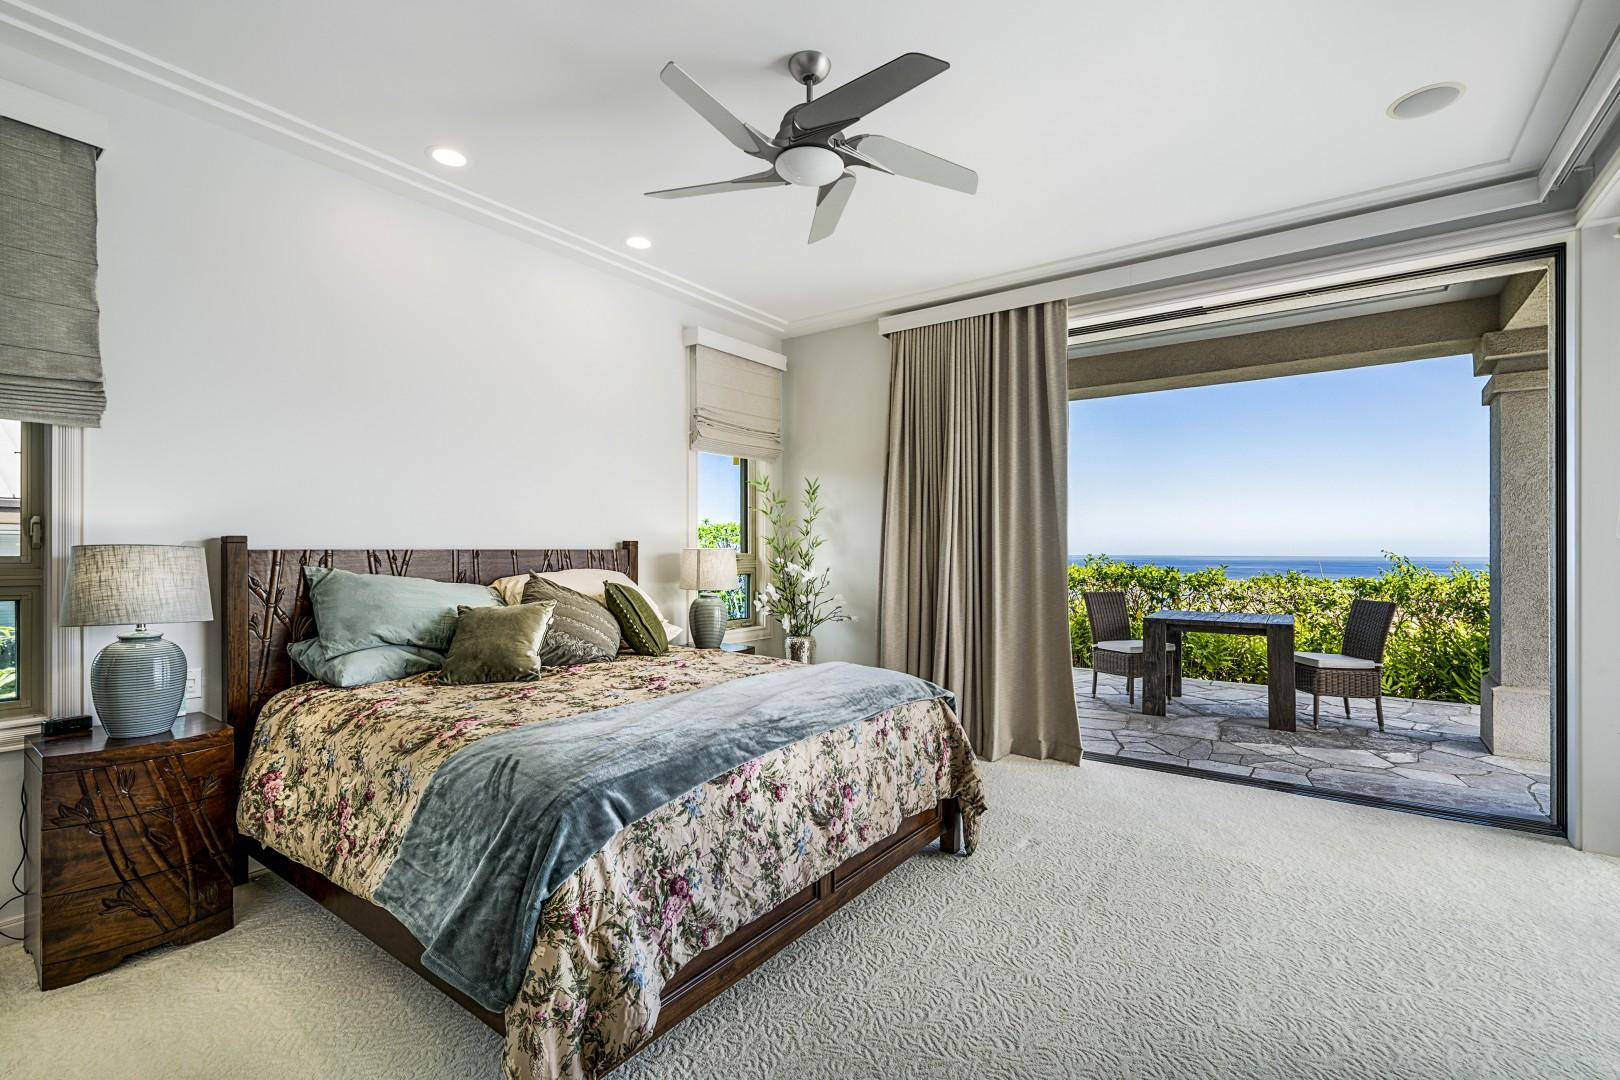 Master bedroom with King sized bed, attached ensuite, and phenomenal views!